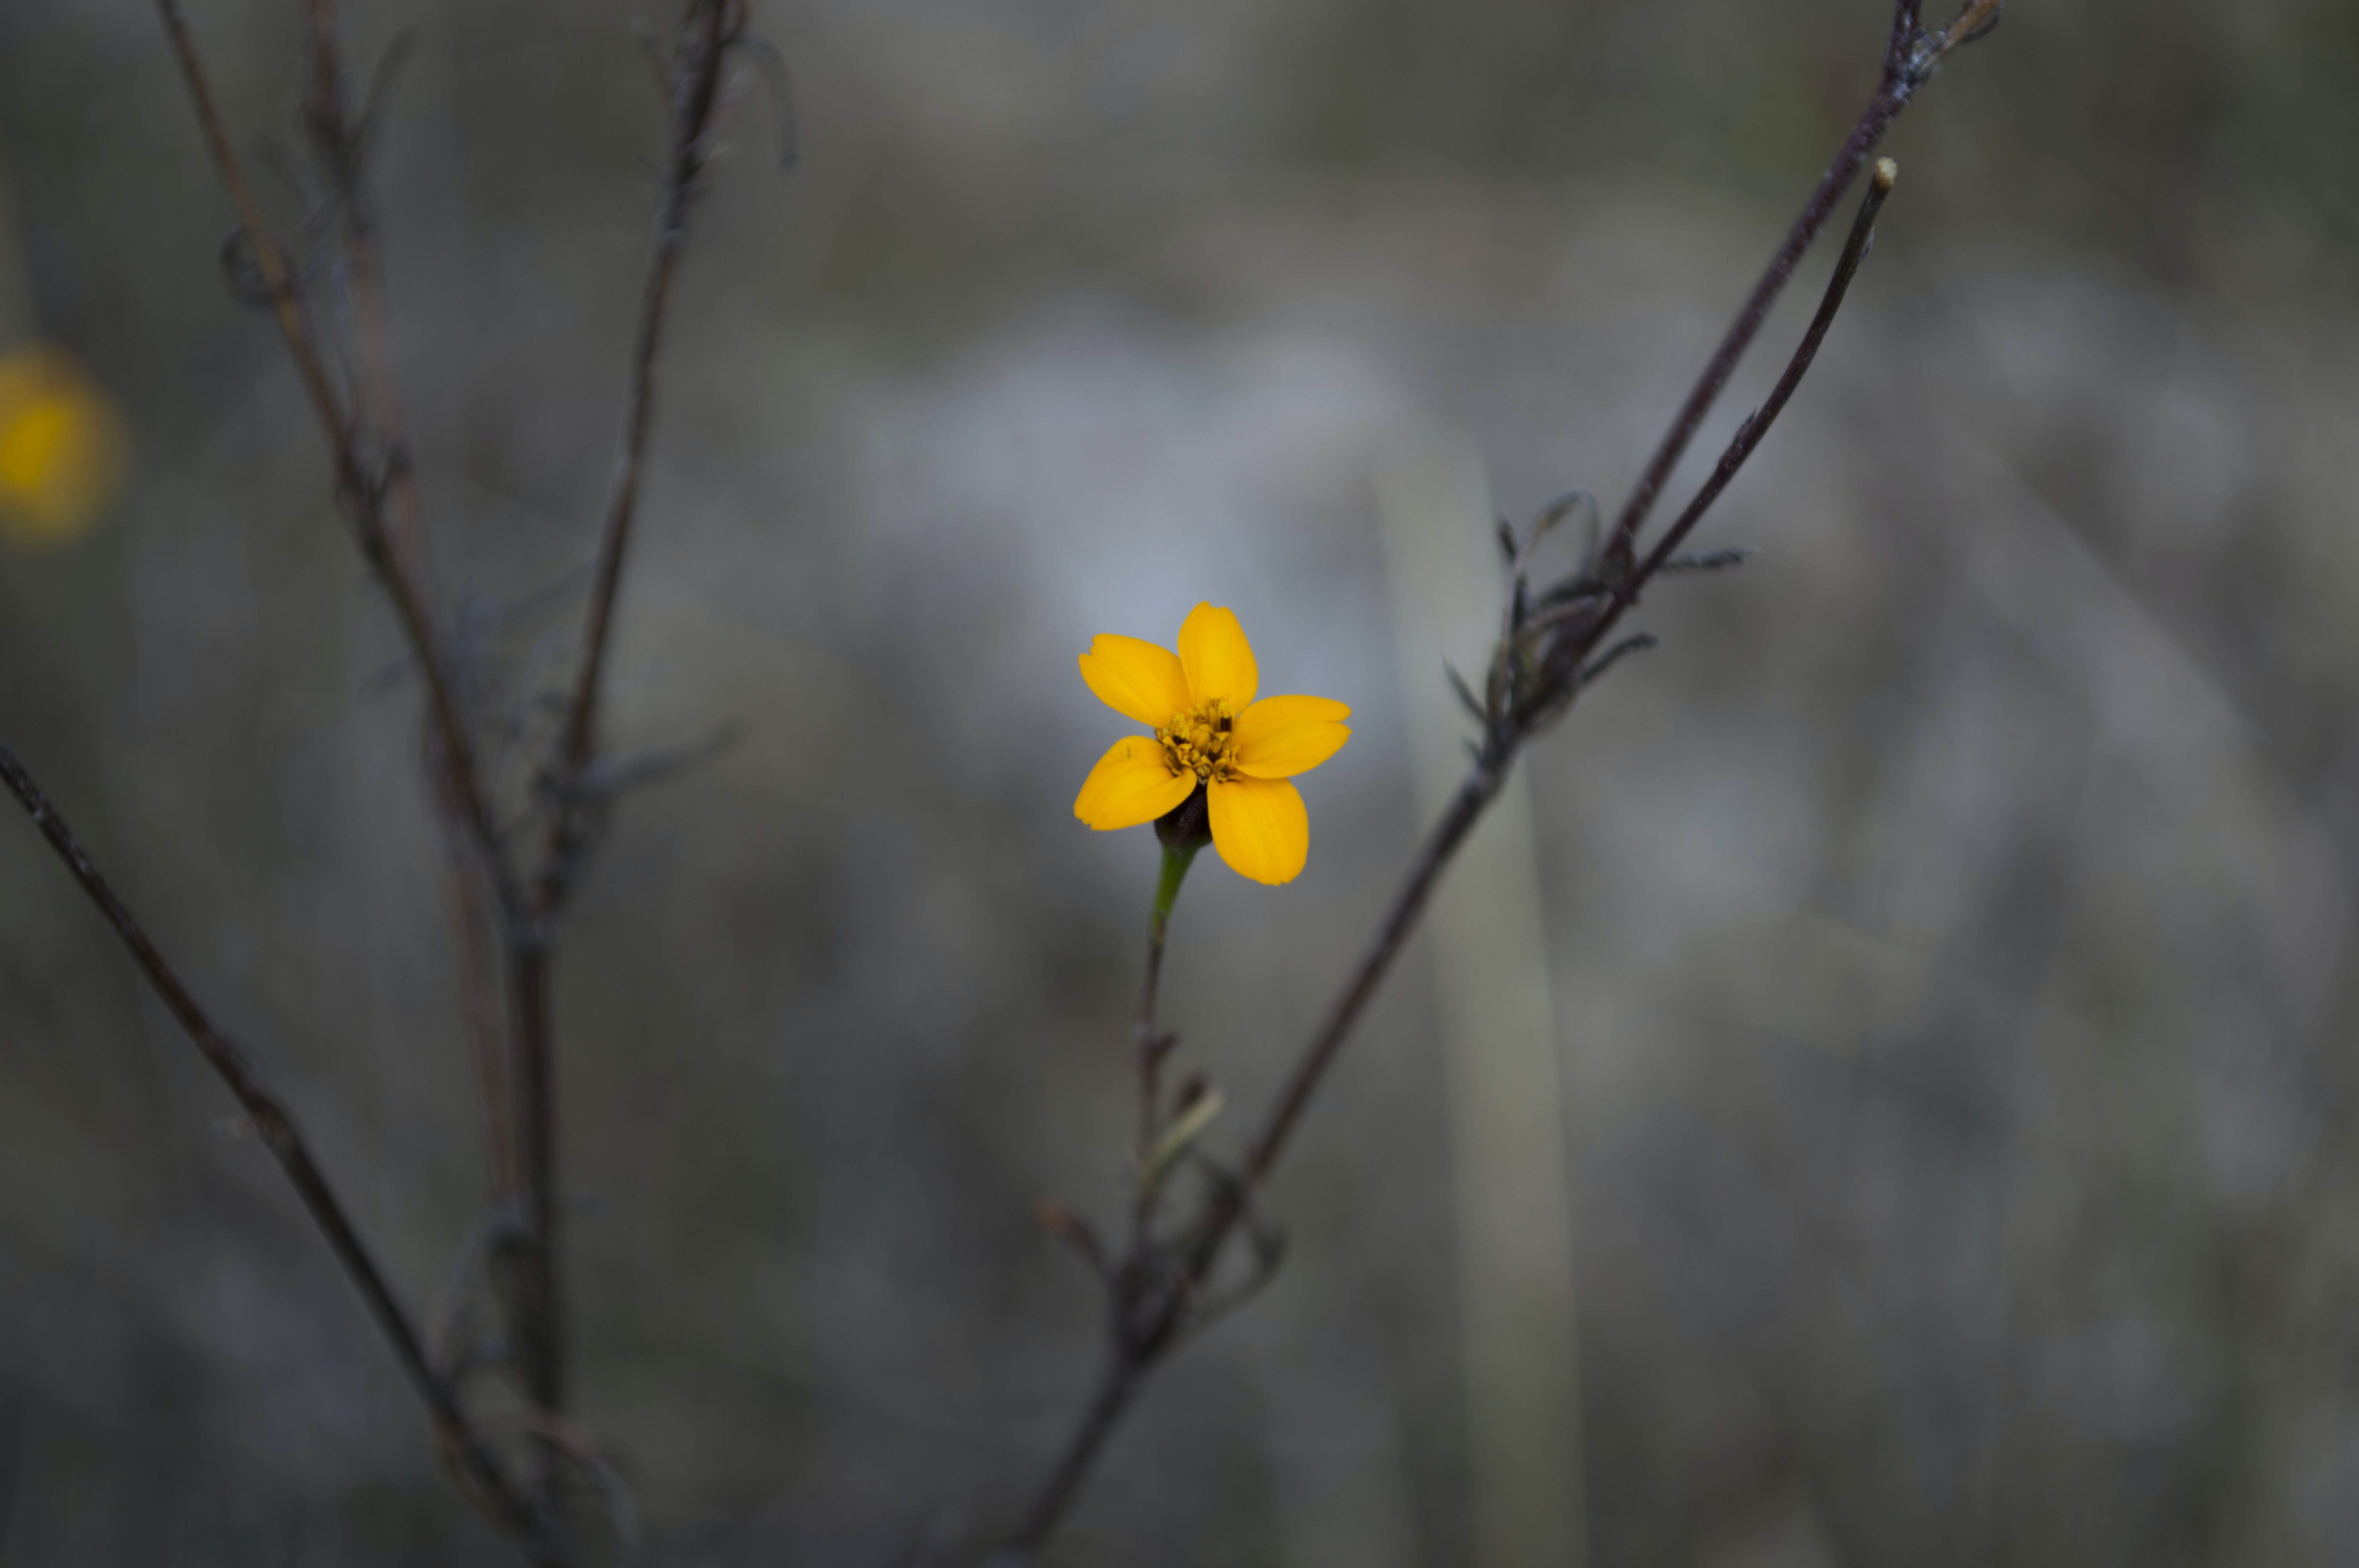 Close-up of a yellow flower at the tip of a branch